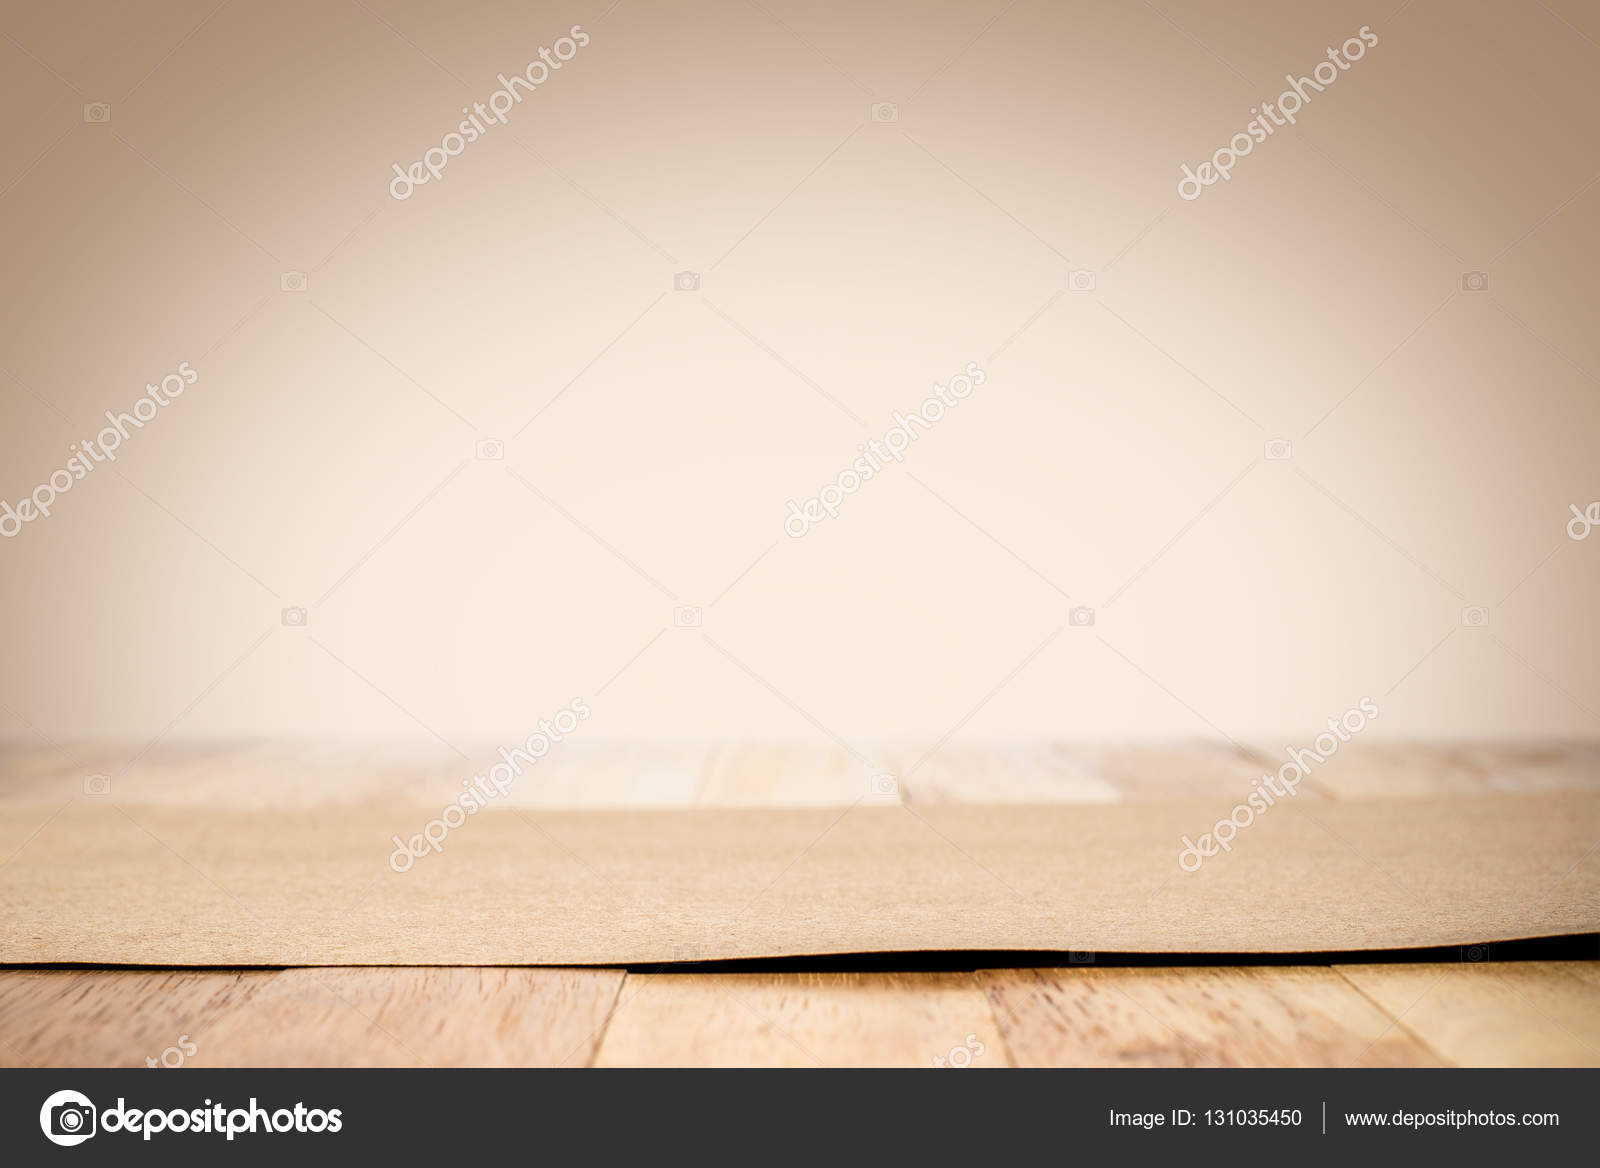 Brown Paper On Wood Table Top In Light Gradient Background